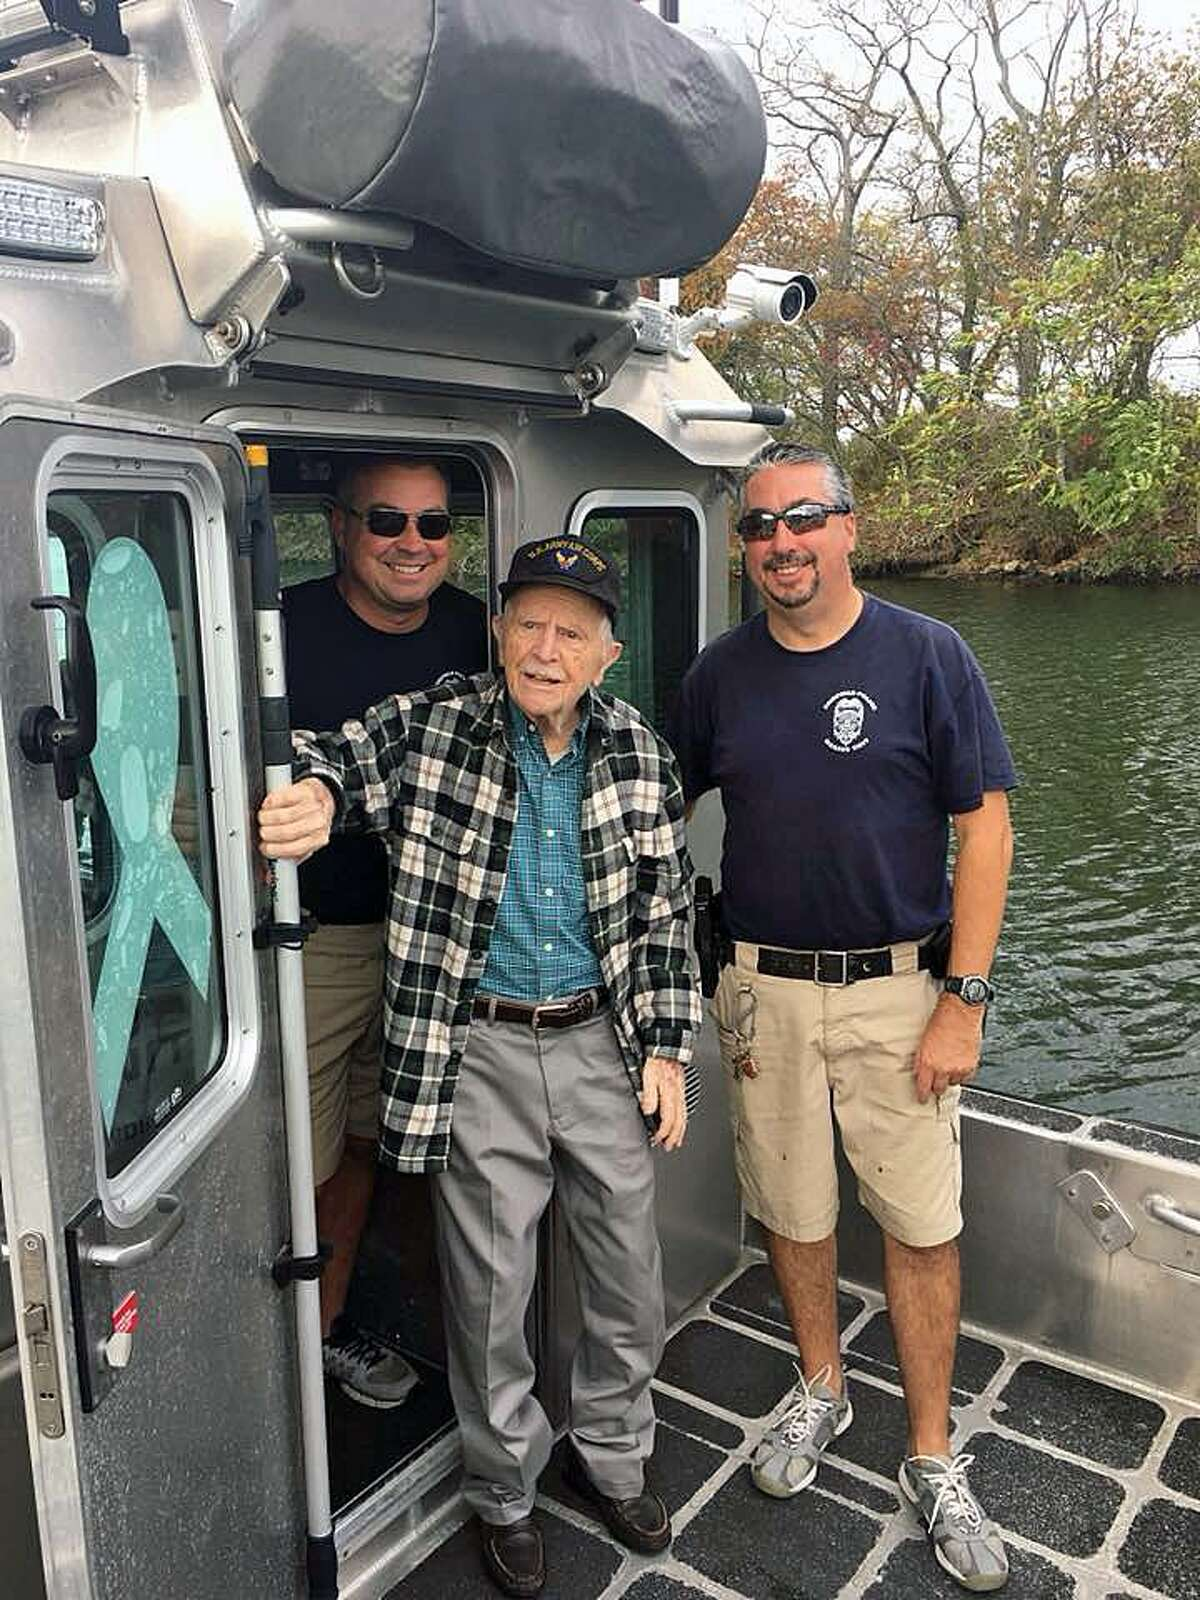 The Fairfield Police Department helped Donald Murray, 93, check an item off his bucket list by giving him a ride on the department's police boat.